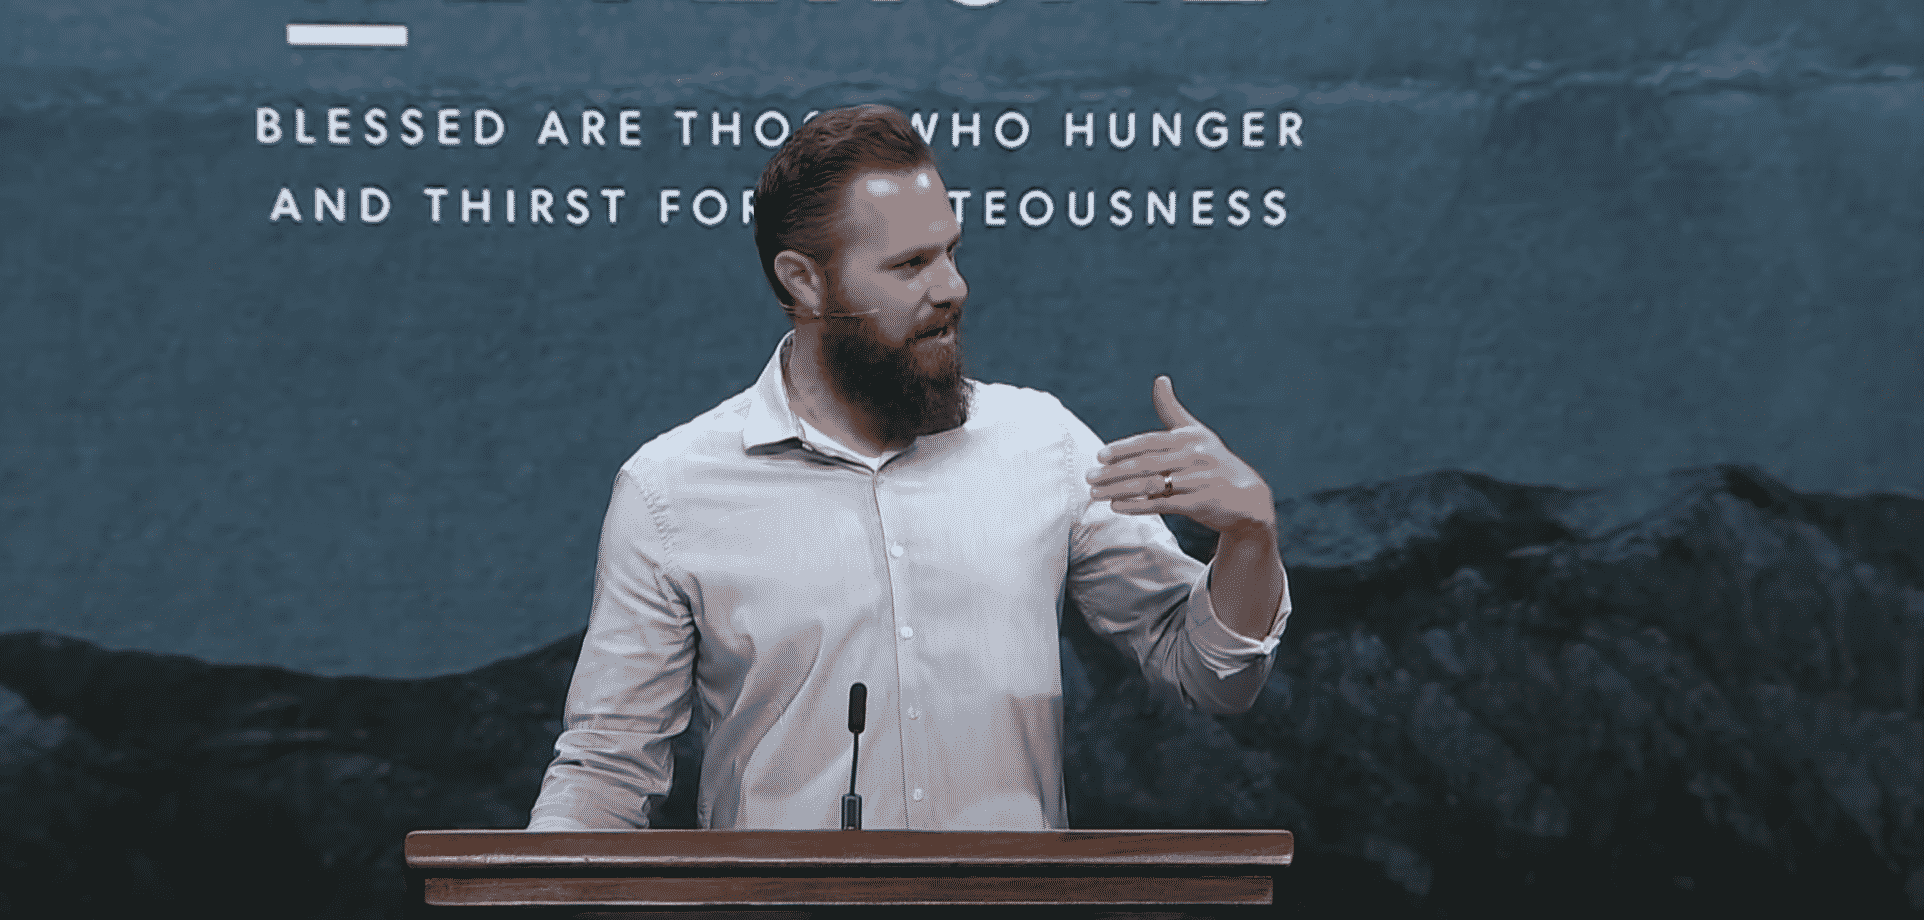 The Great Reversal: Those Who Hunger And Thirst For Righteousness